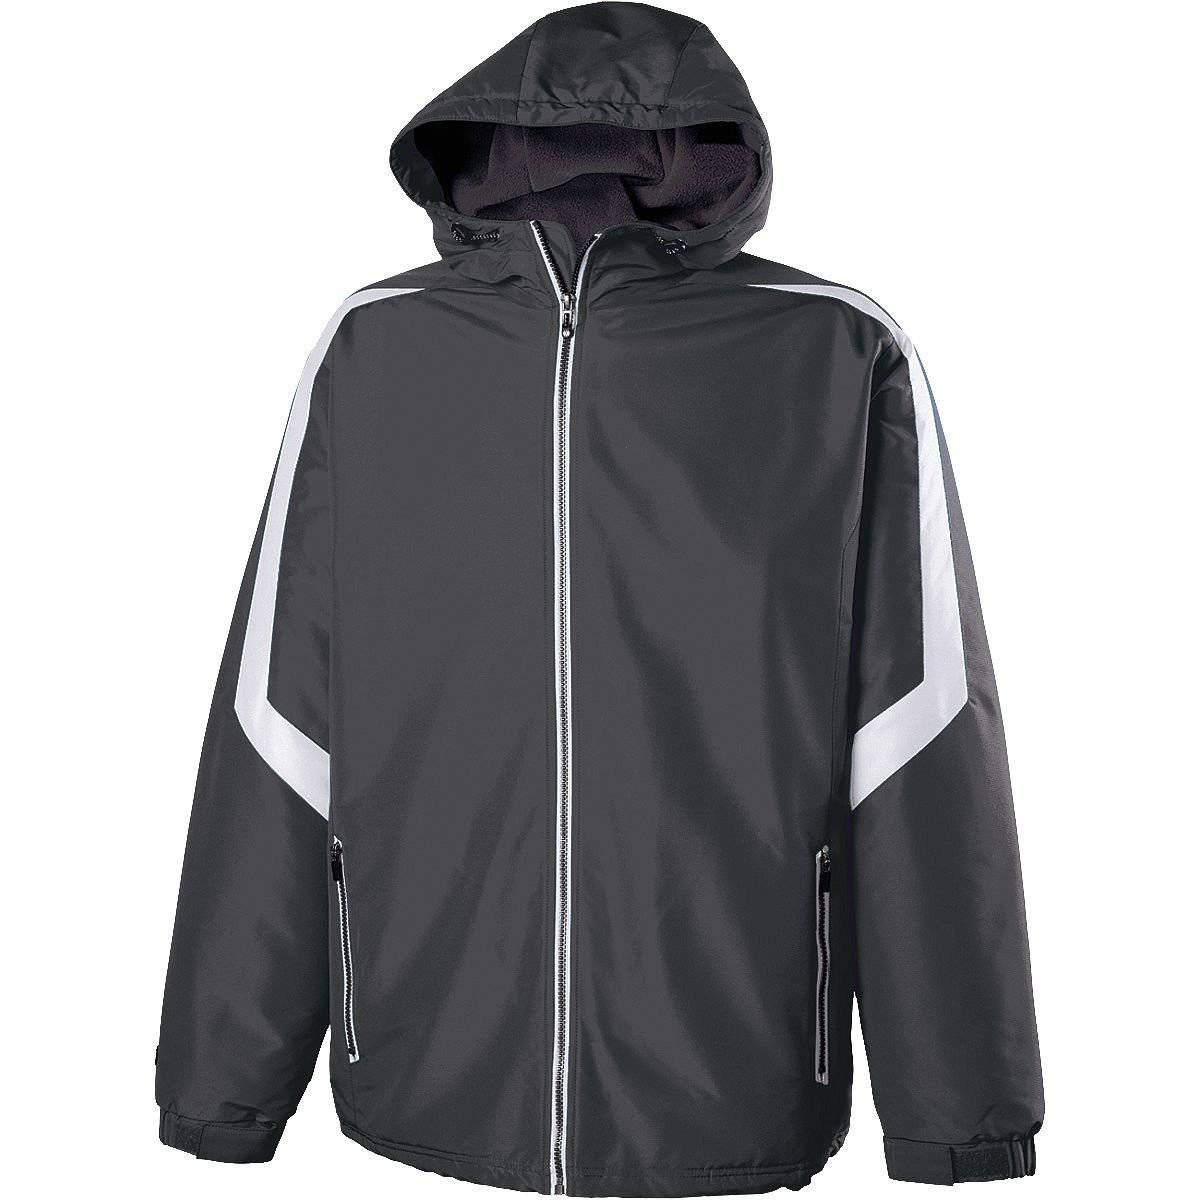 Holloway 229059 Charger Jacket - Carbon White